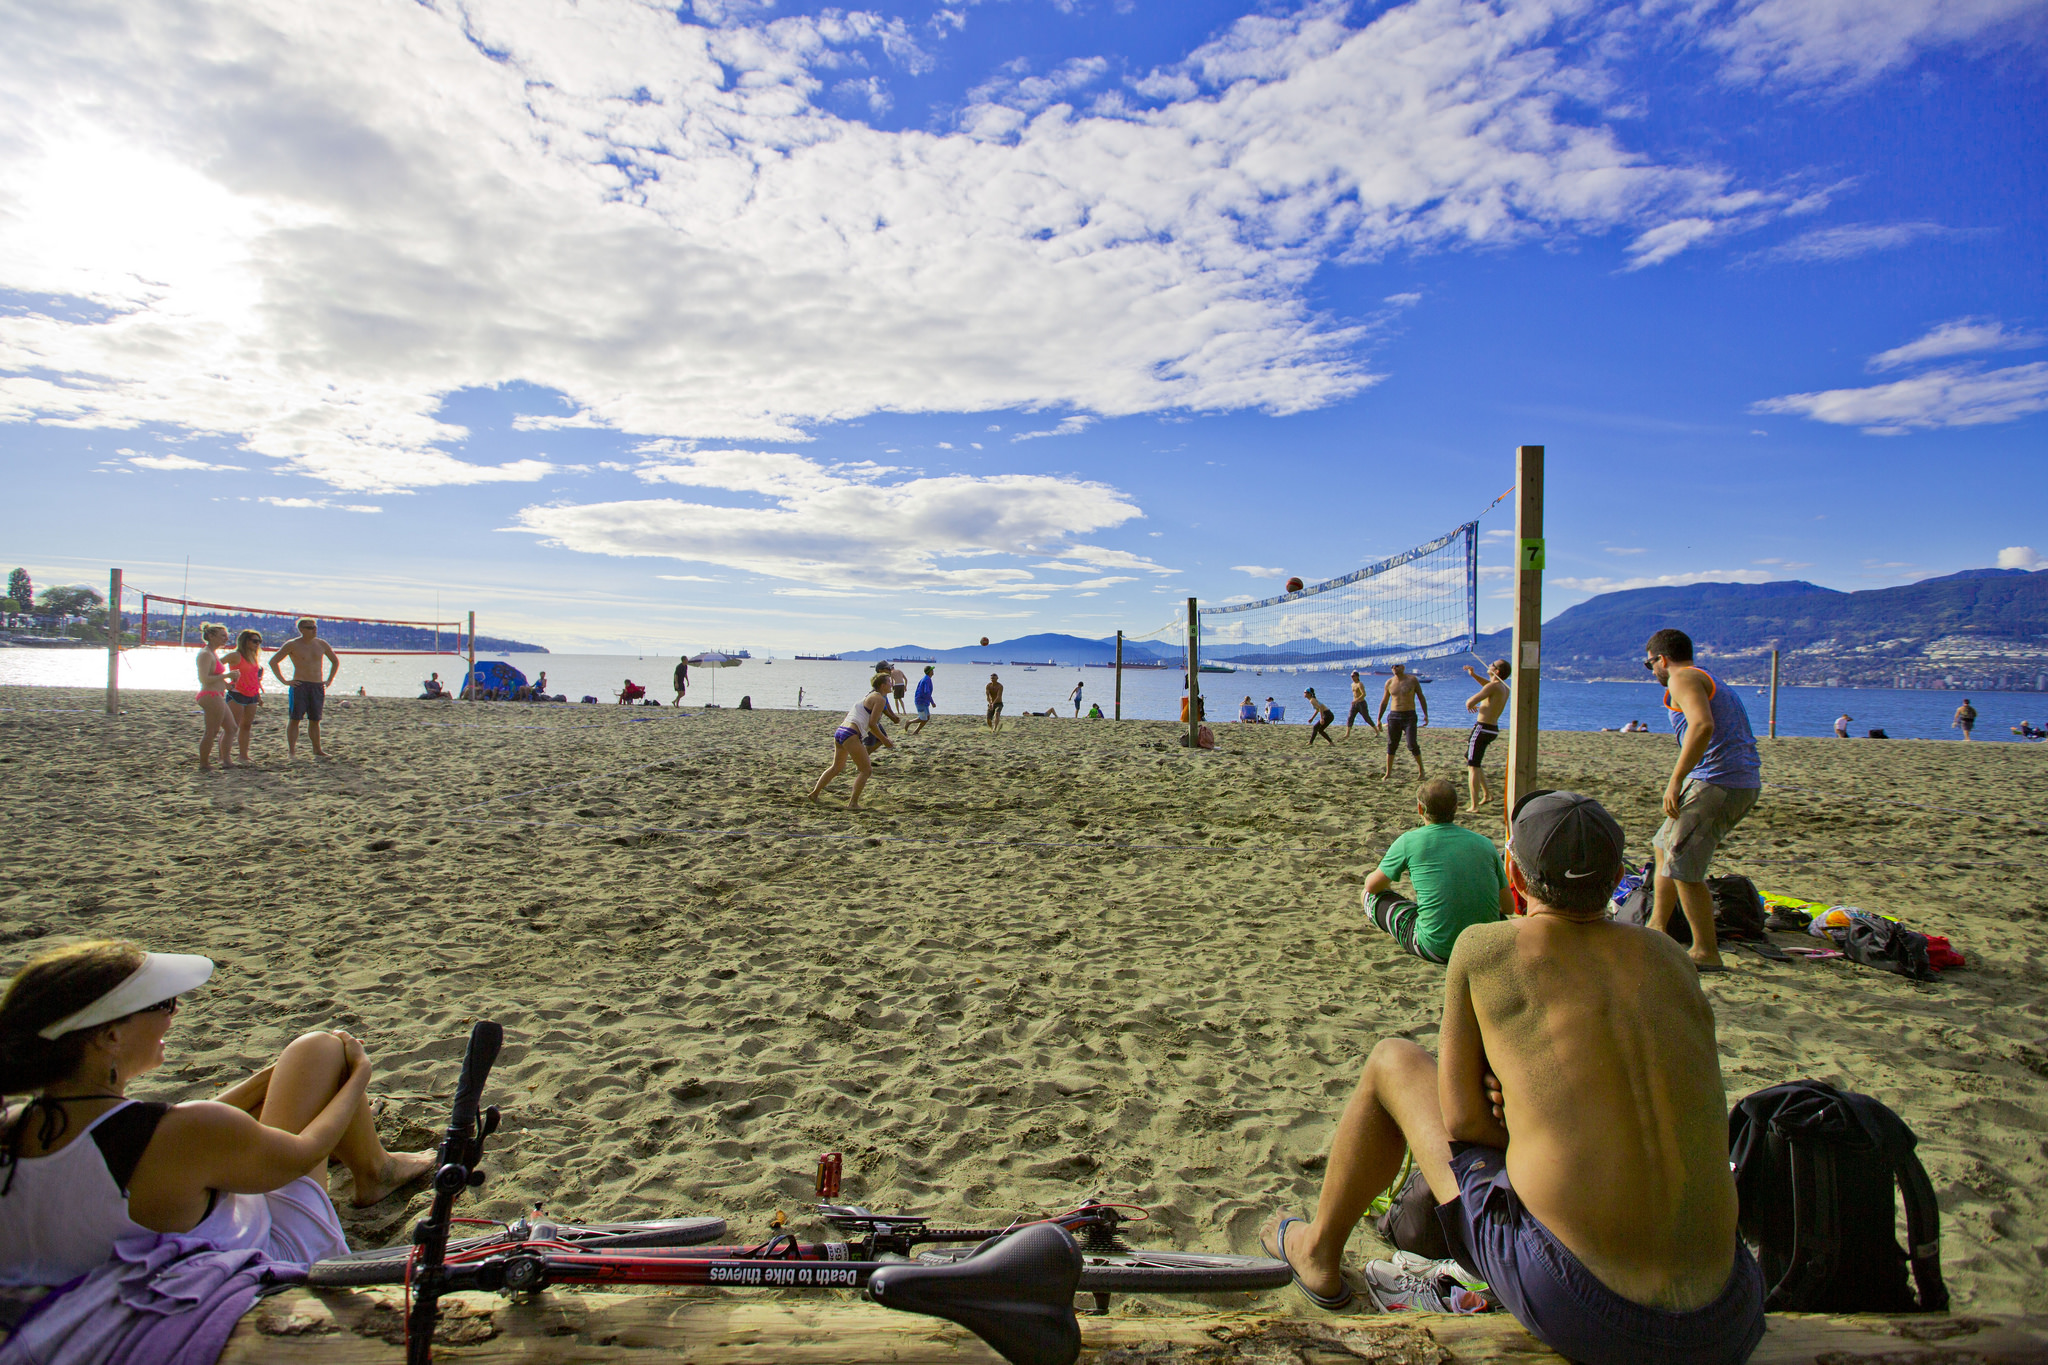 Best Beaches To Visit Near Downtown Ywca Hotel Vancouver